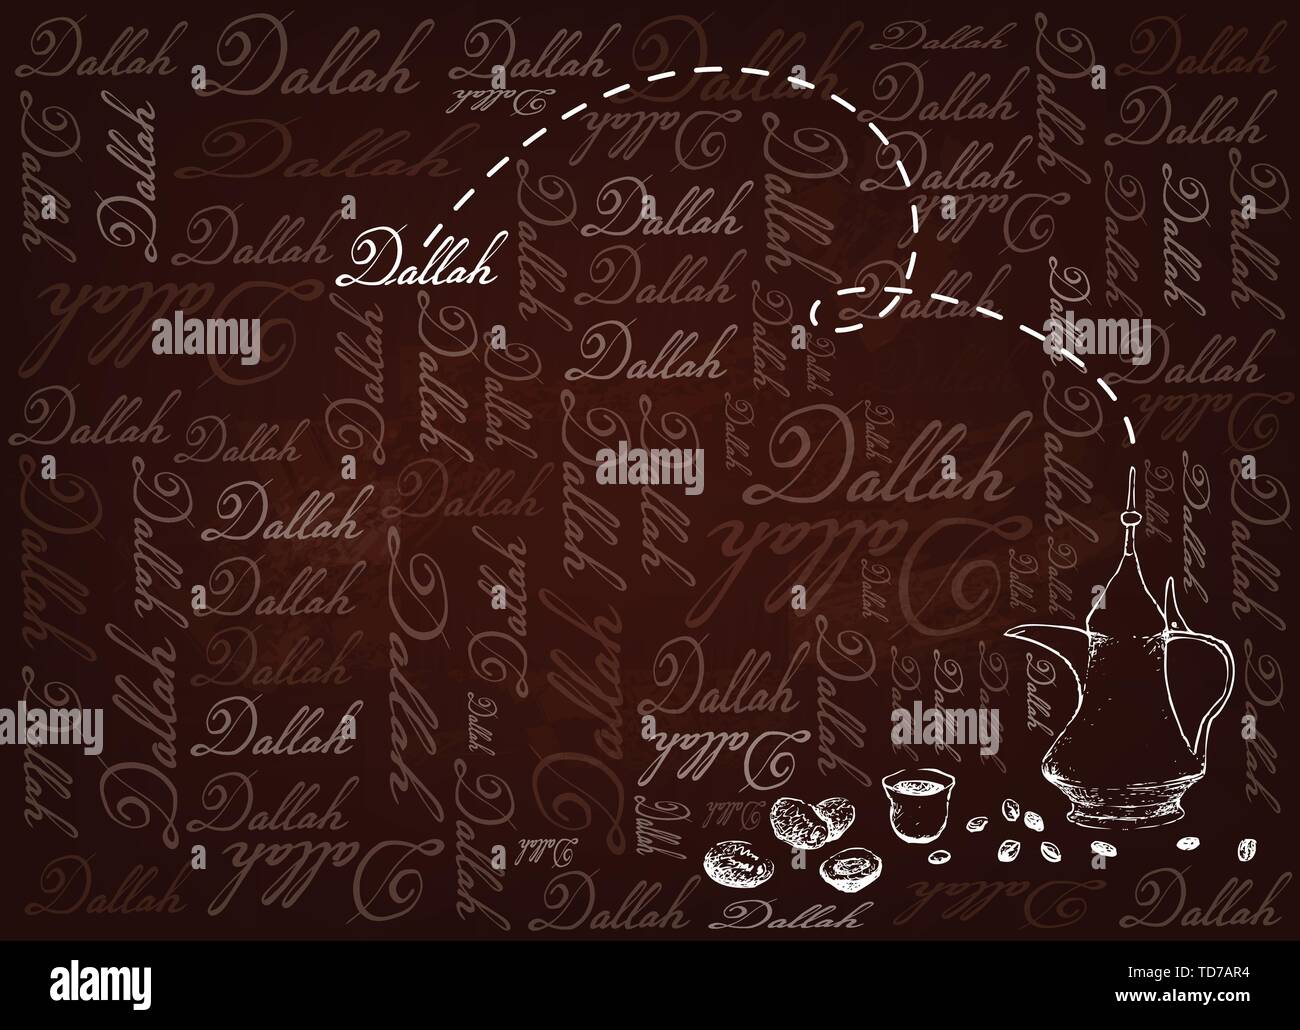 Turkish Cuisine, Hot Coffee with Dallah or Arabic Coffee on Brown Background, Used for Centuries to Brew and Serve Qahwa or Gahwa. - Stock Vector